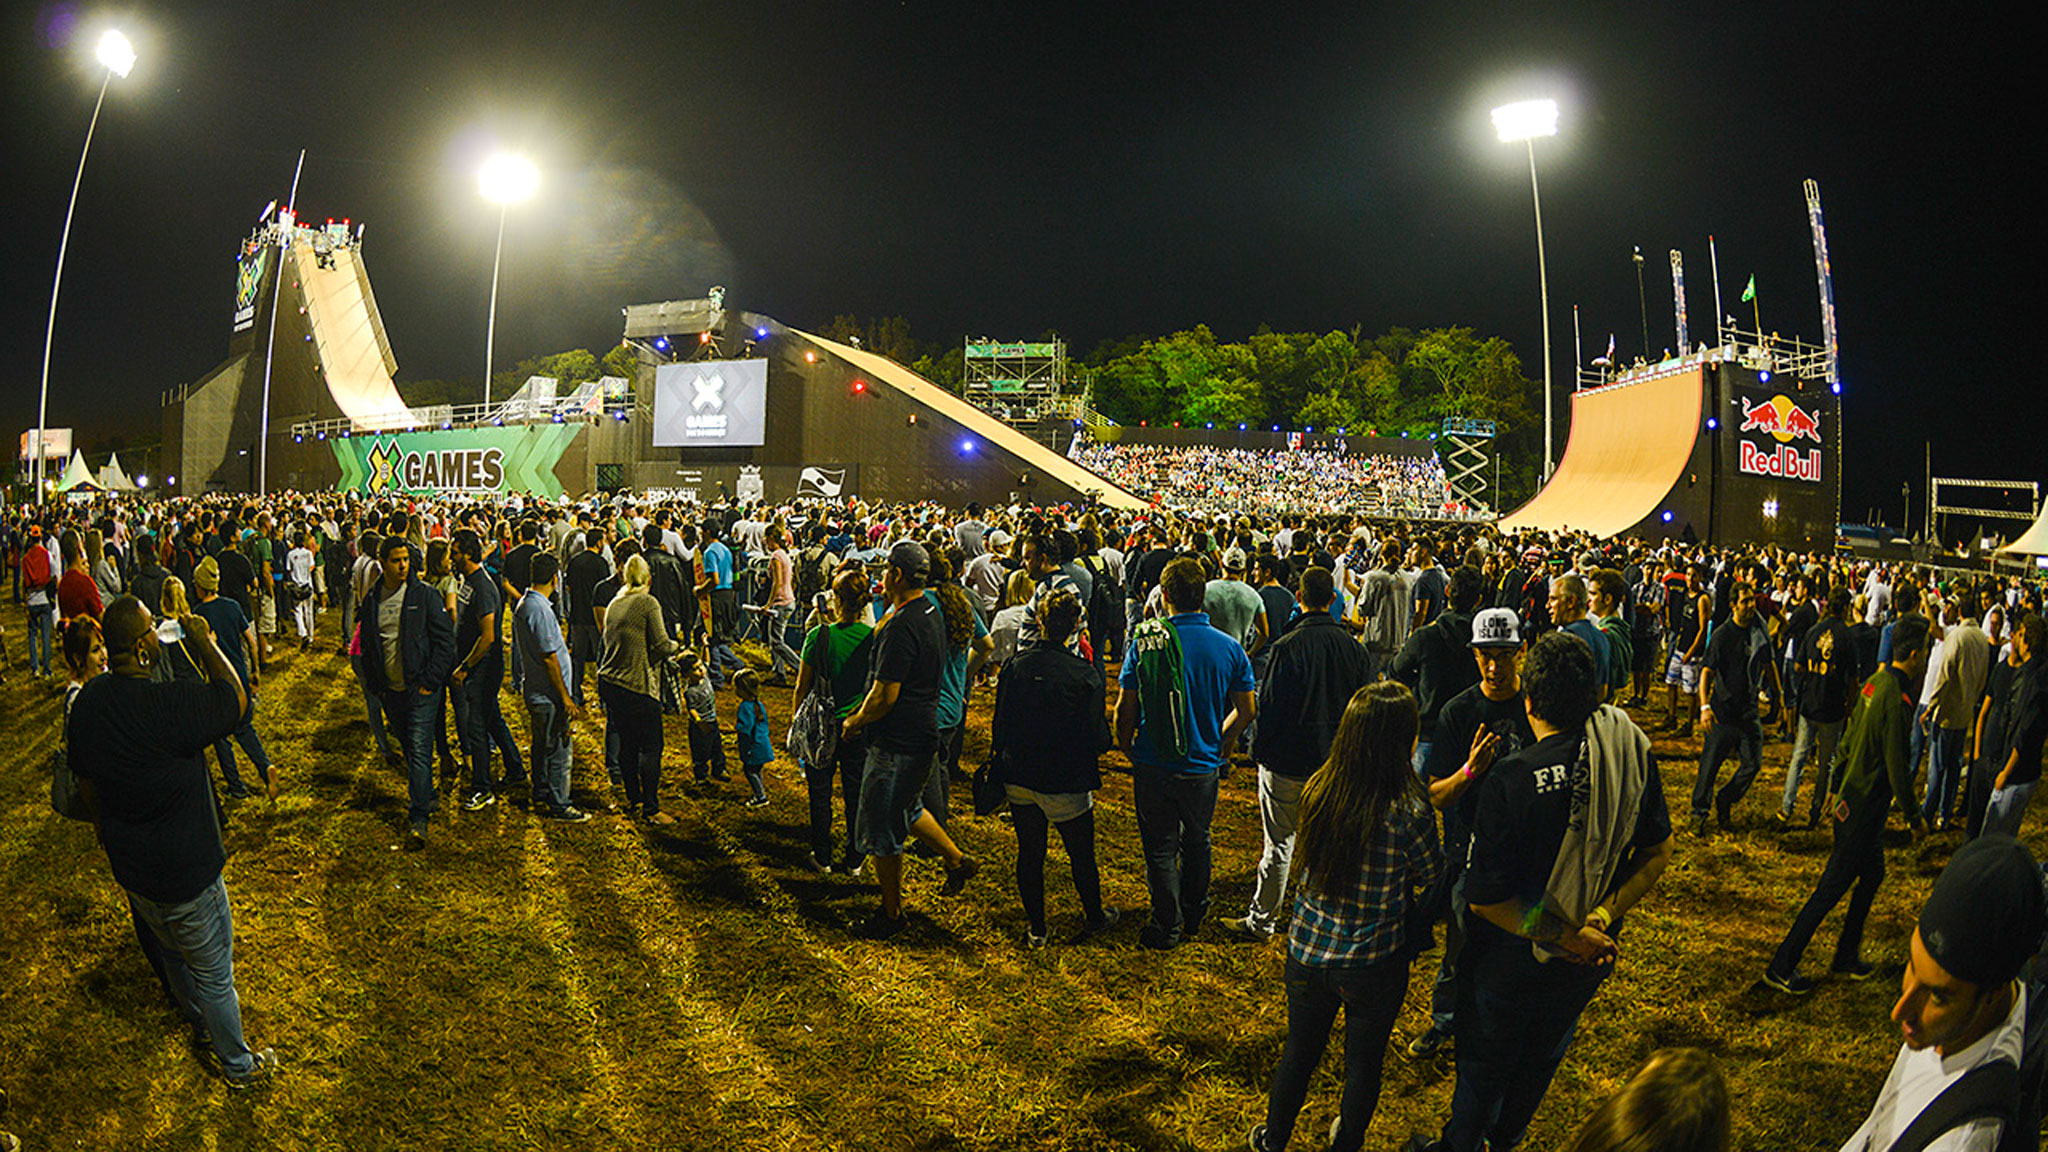 X Games Foz do Iguau